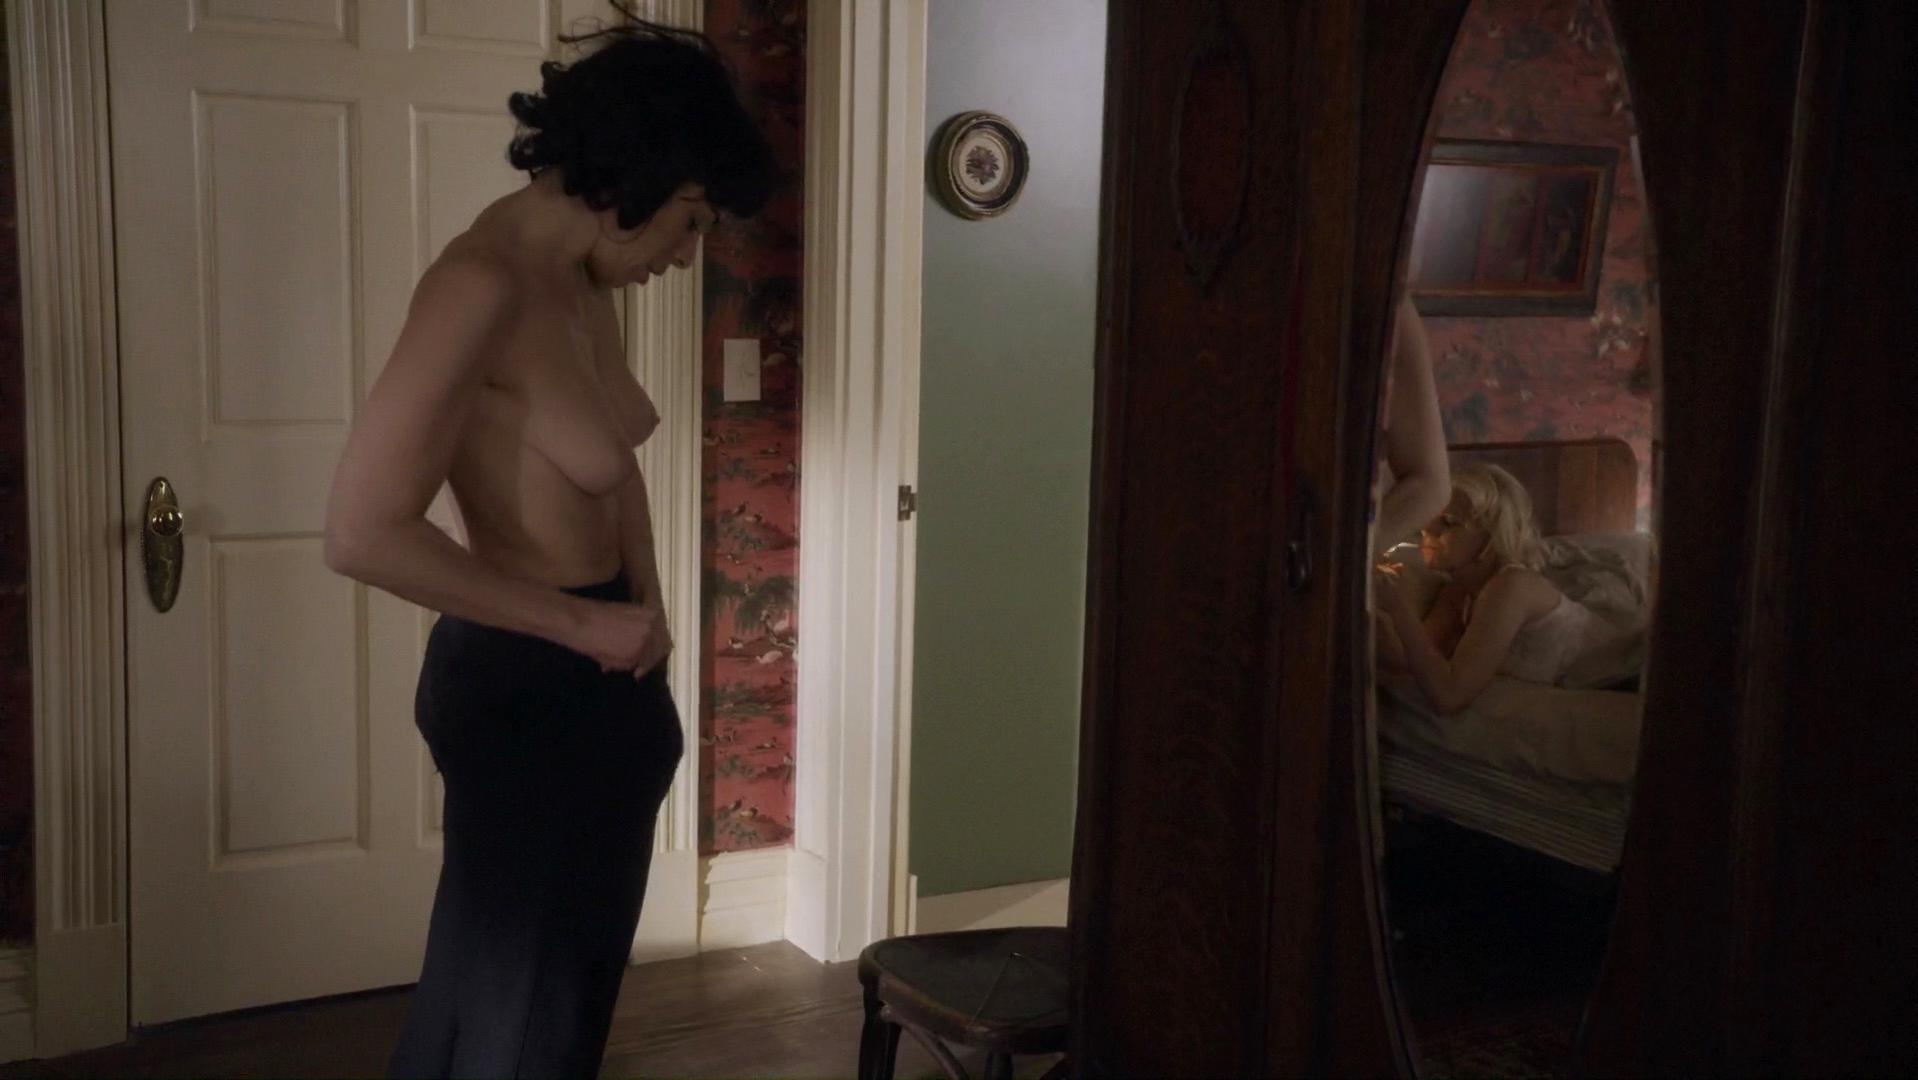 Sarah Silverman nude, Annaleigh Ashford sexy - Masters of Sex s02e06 (2014)